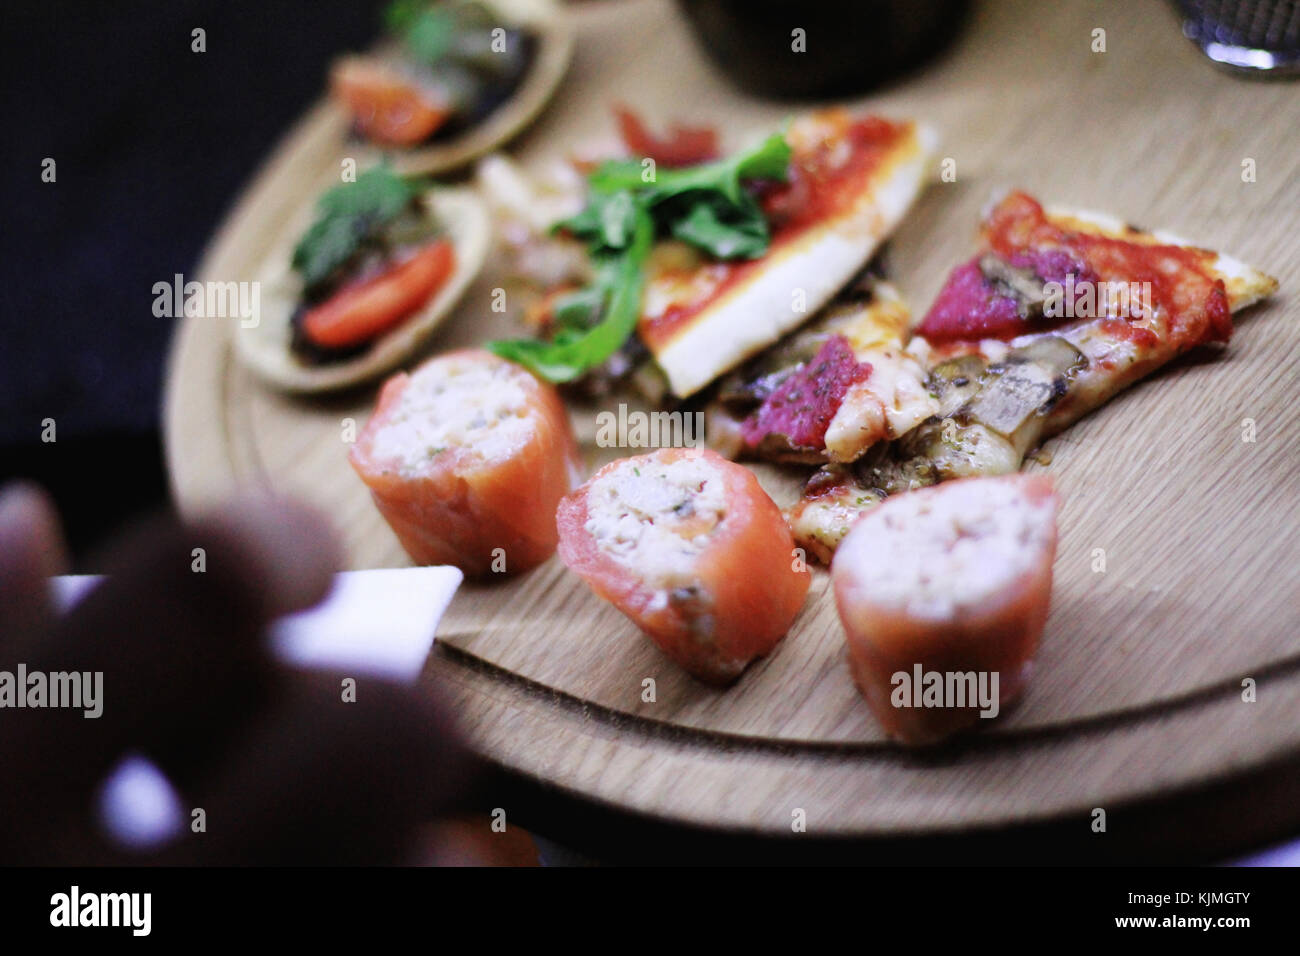 Canape selection stock photos canape selection stock for Canape platters